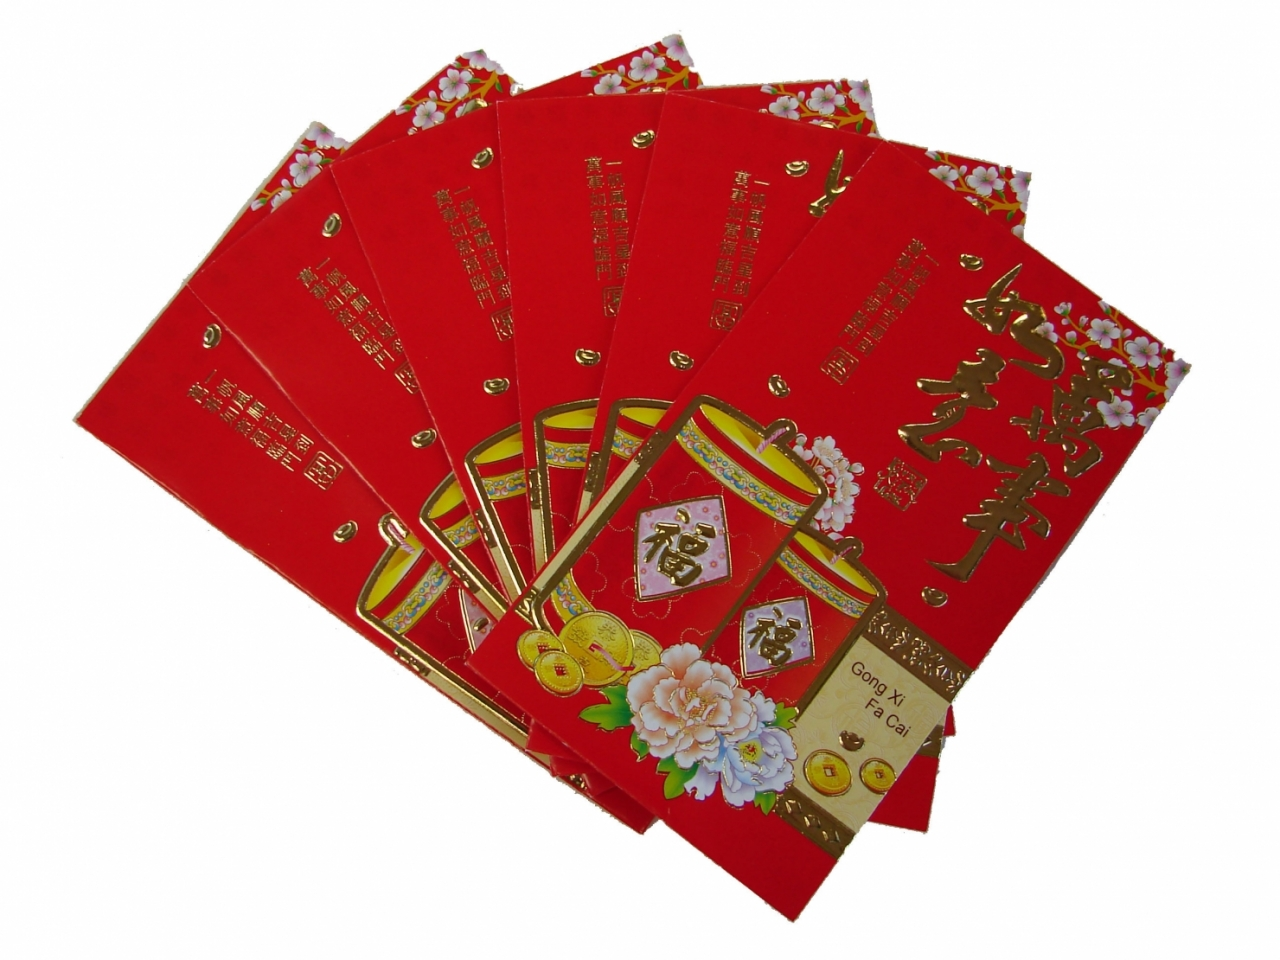 Big Chinese Money Envelopes Big Red Envelopes With Coin